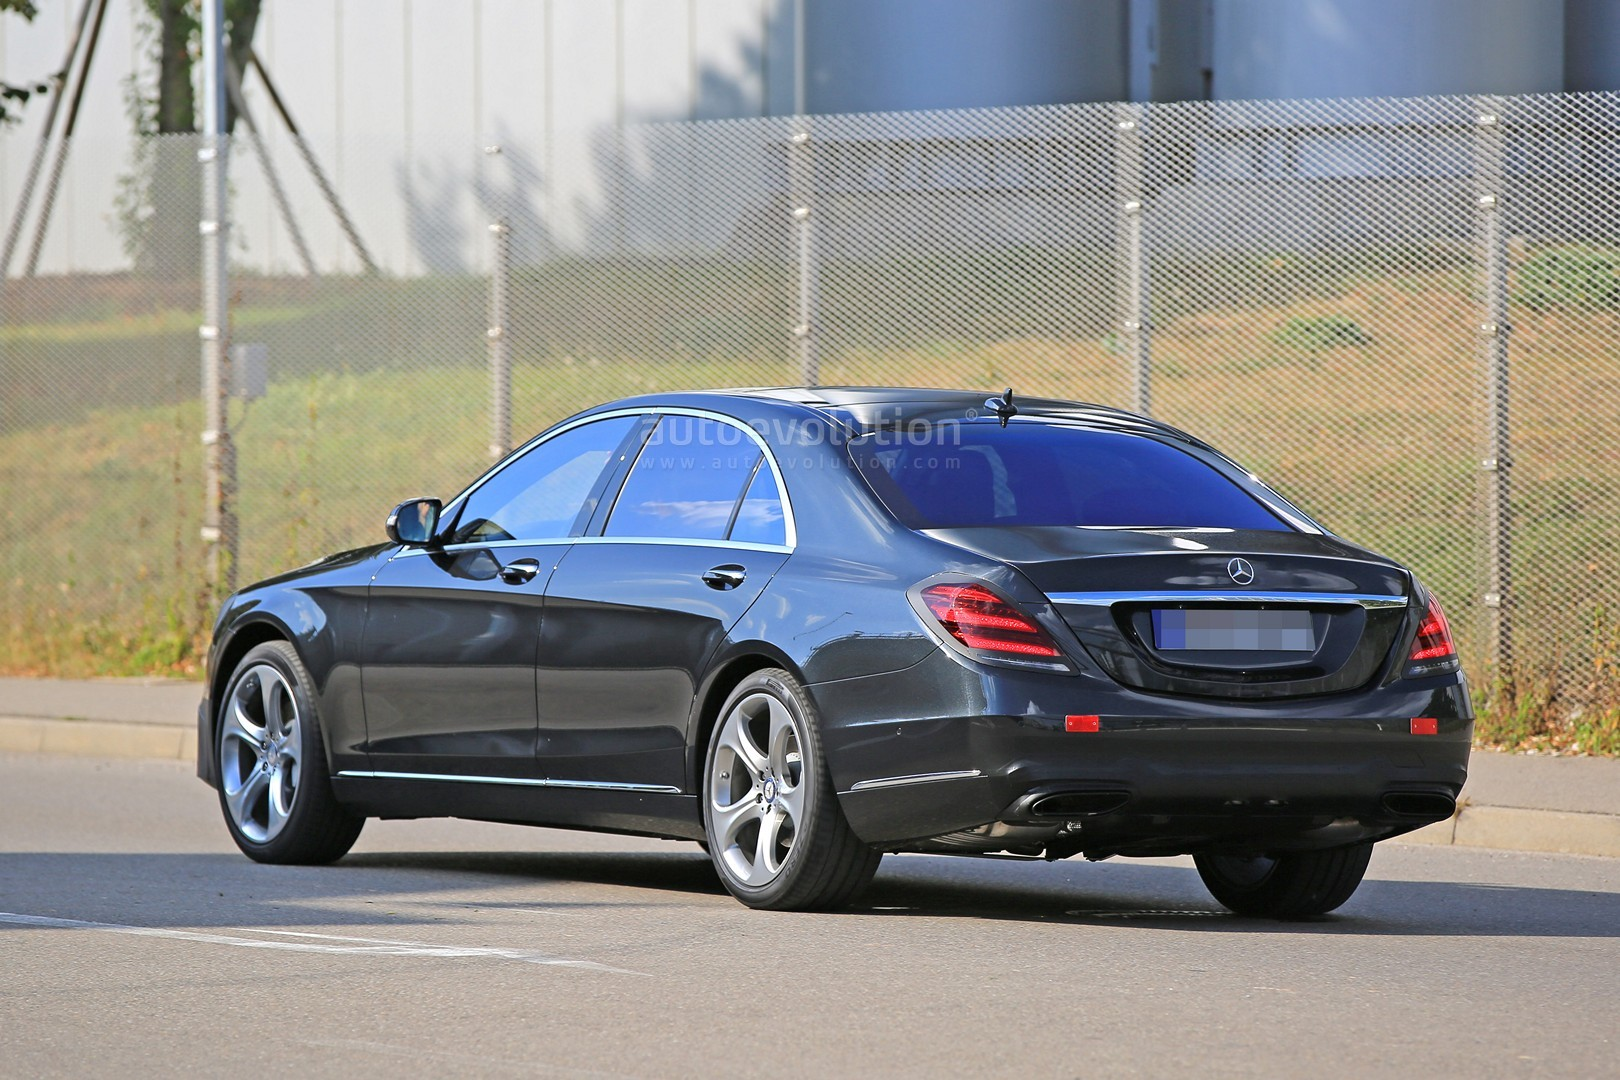 2018 mercedes s class taillights spied in detail. Black Bedroom Furniture Sets. Home Design Ideas